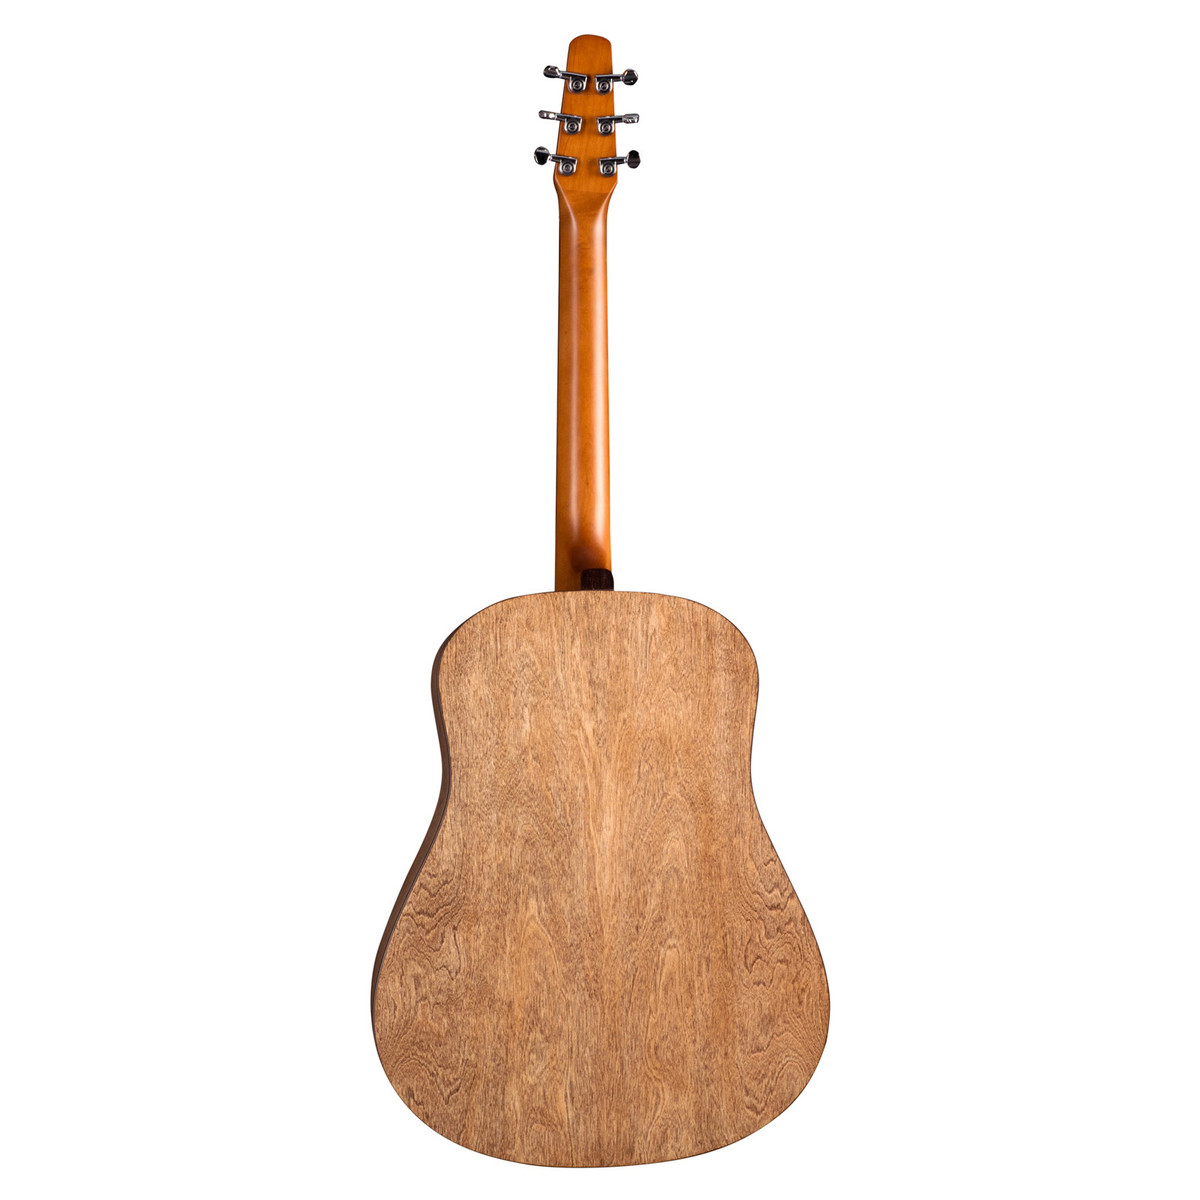 seagull s6 dating Dating back to the 15th century, the trombone is one of the oldest brass instruments there is  seagull guitar reviews seagull s6 review.